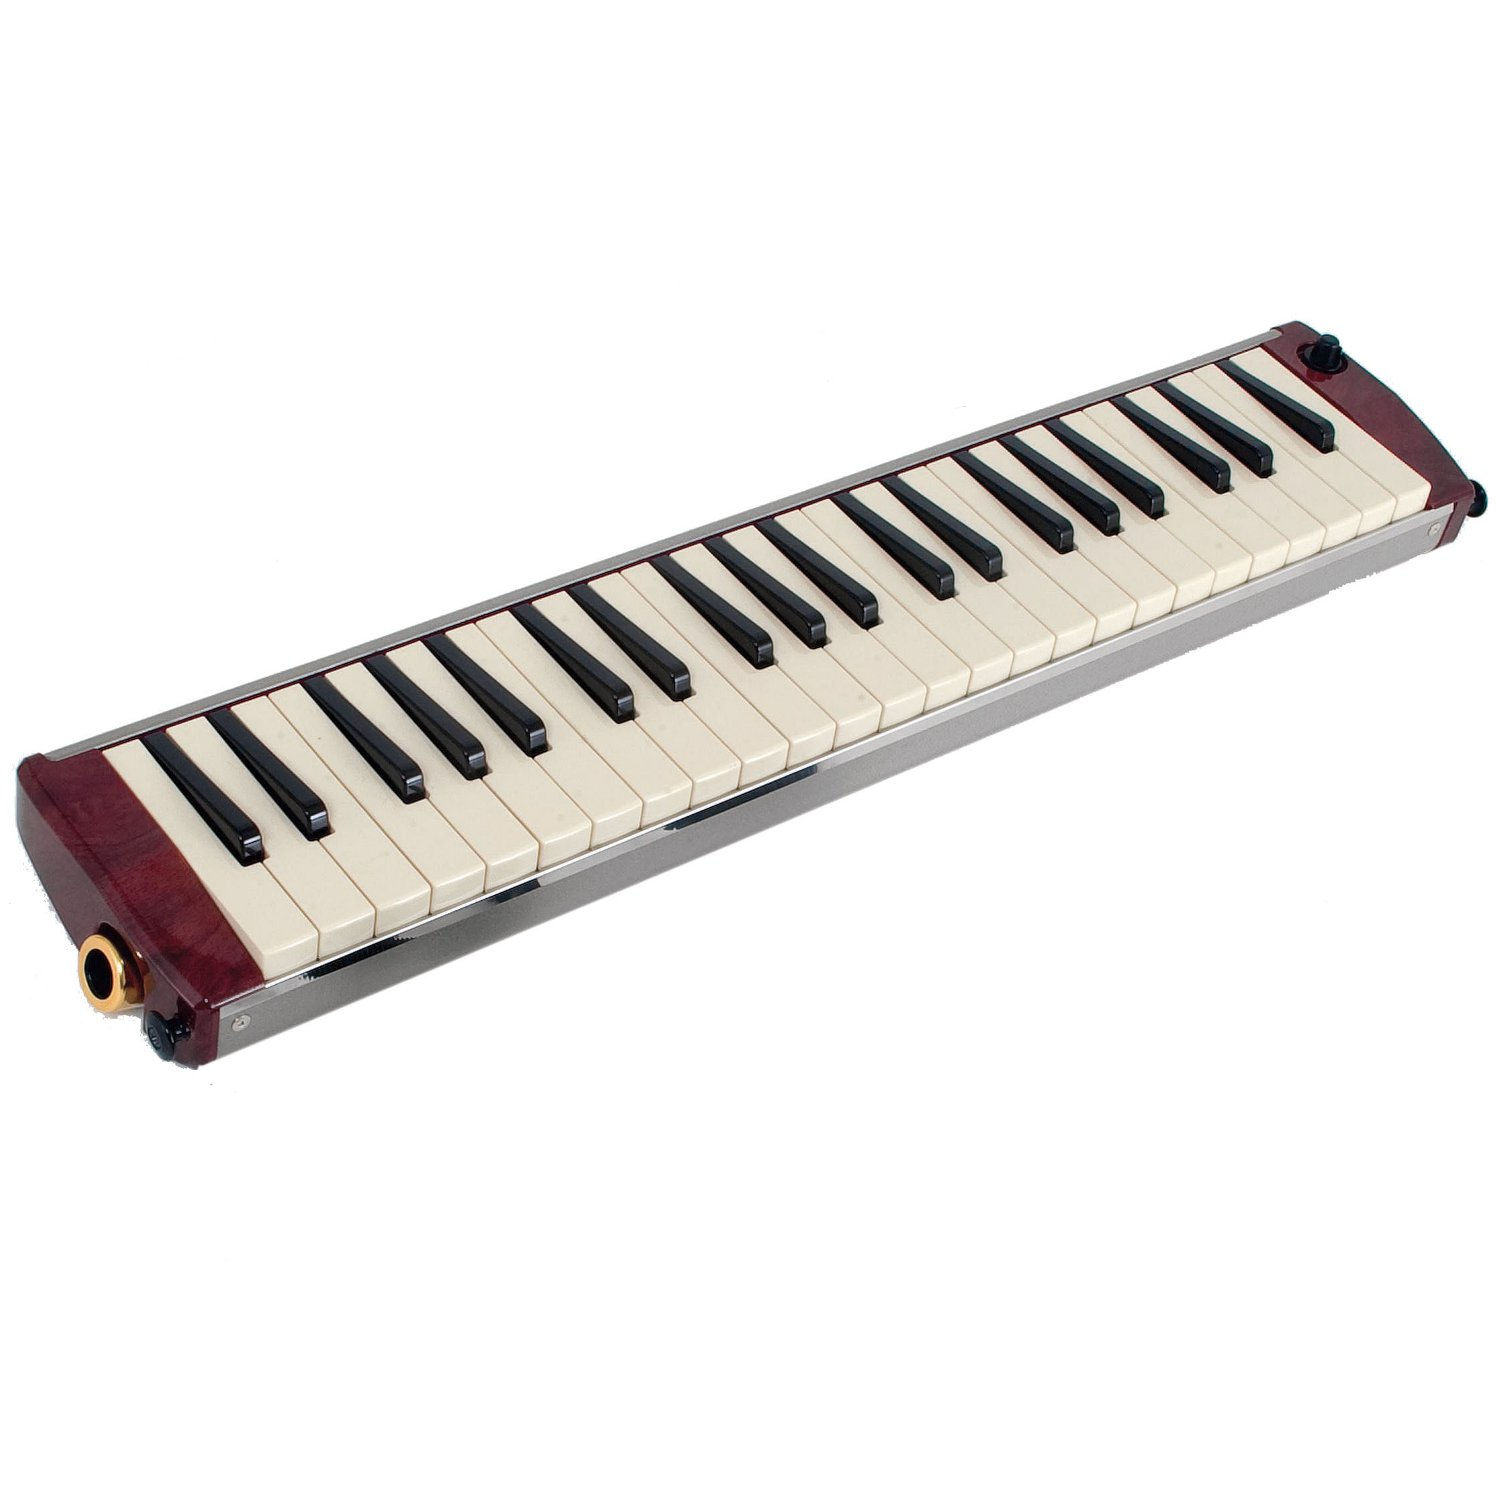 Yamaha Melodica Reviews